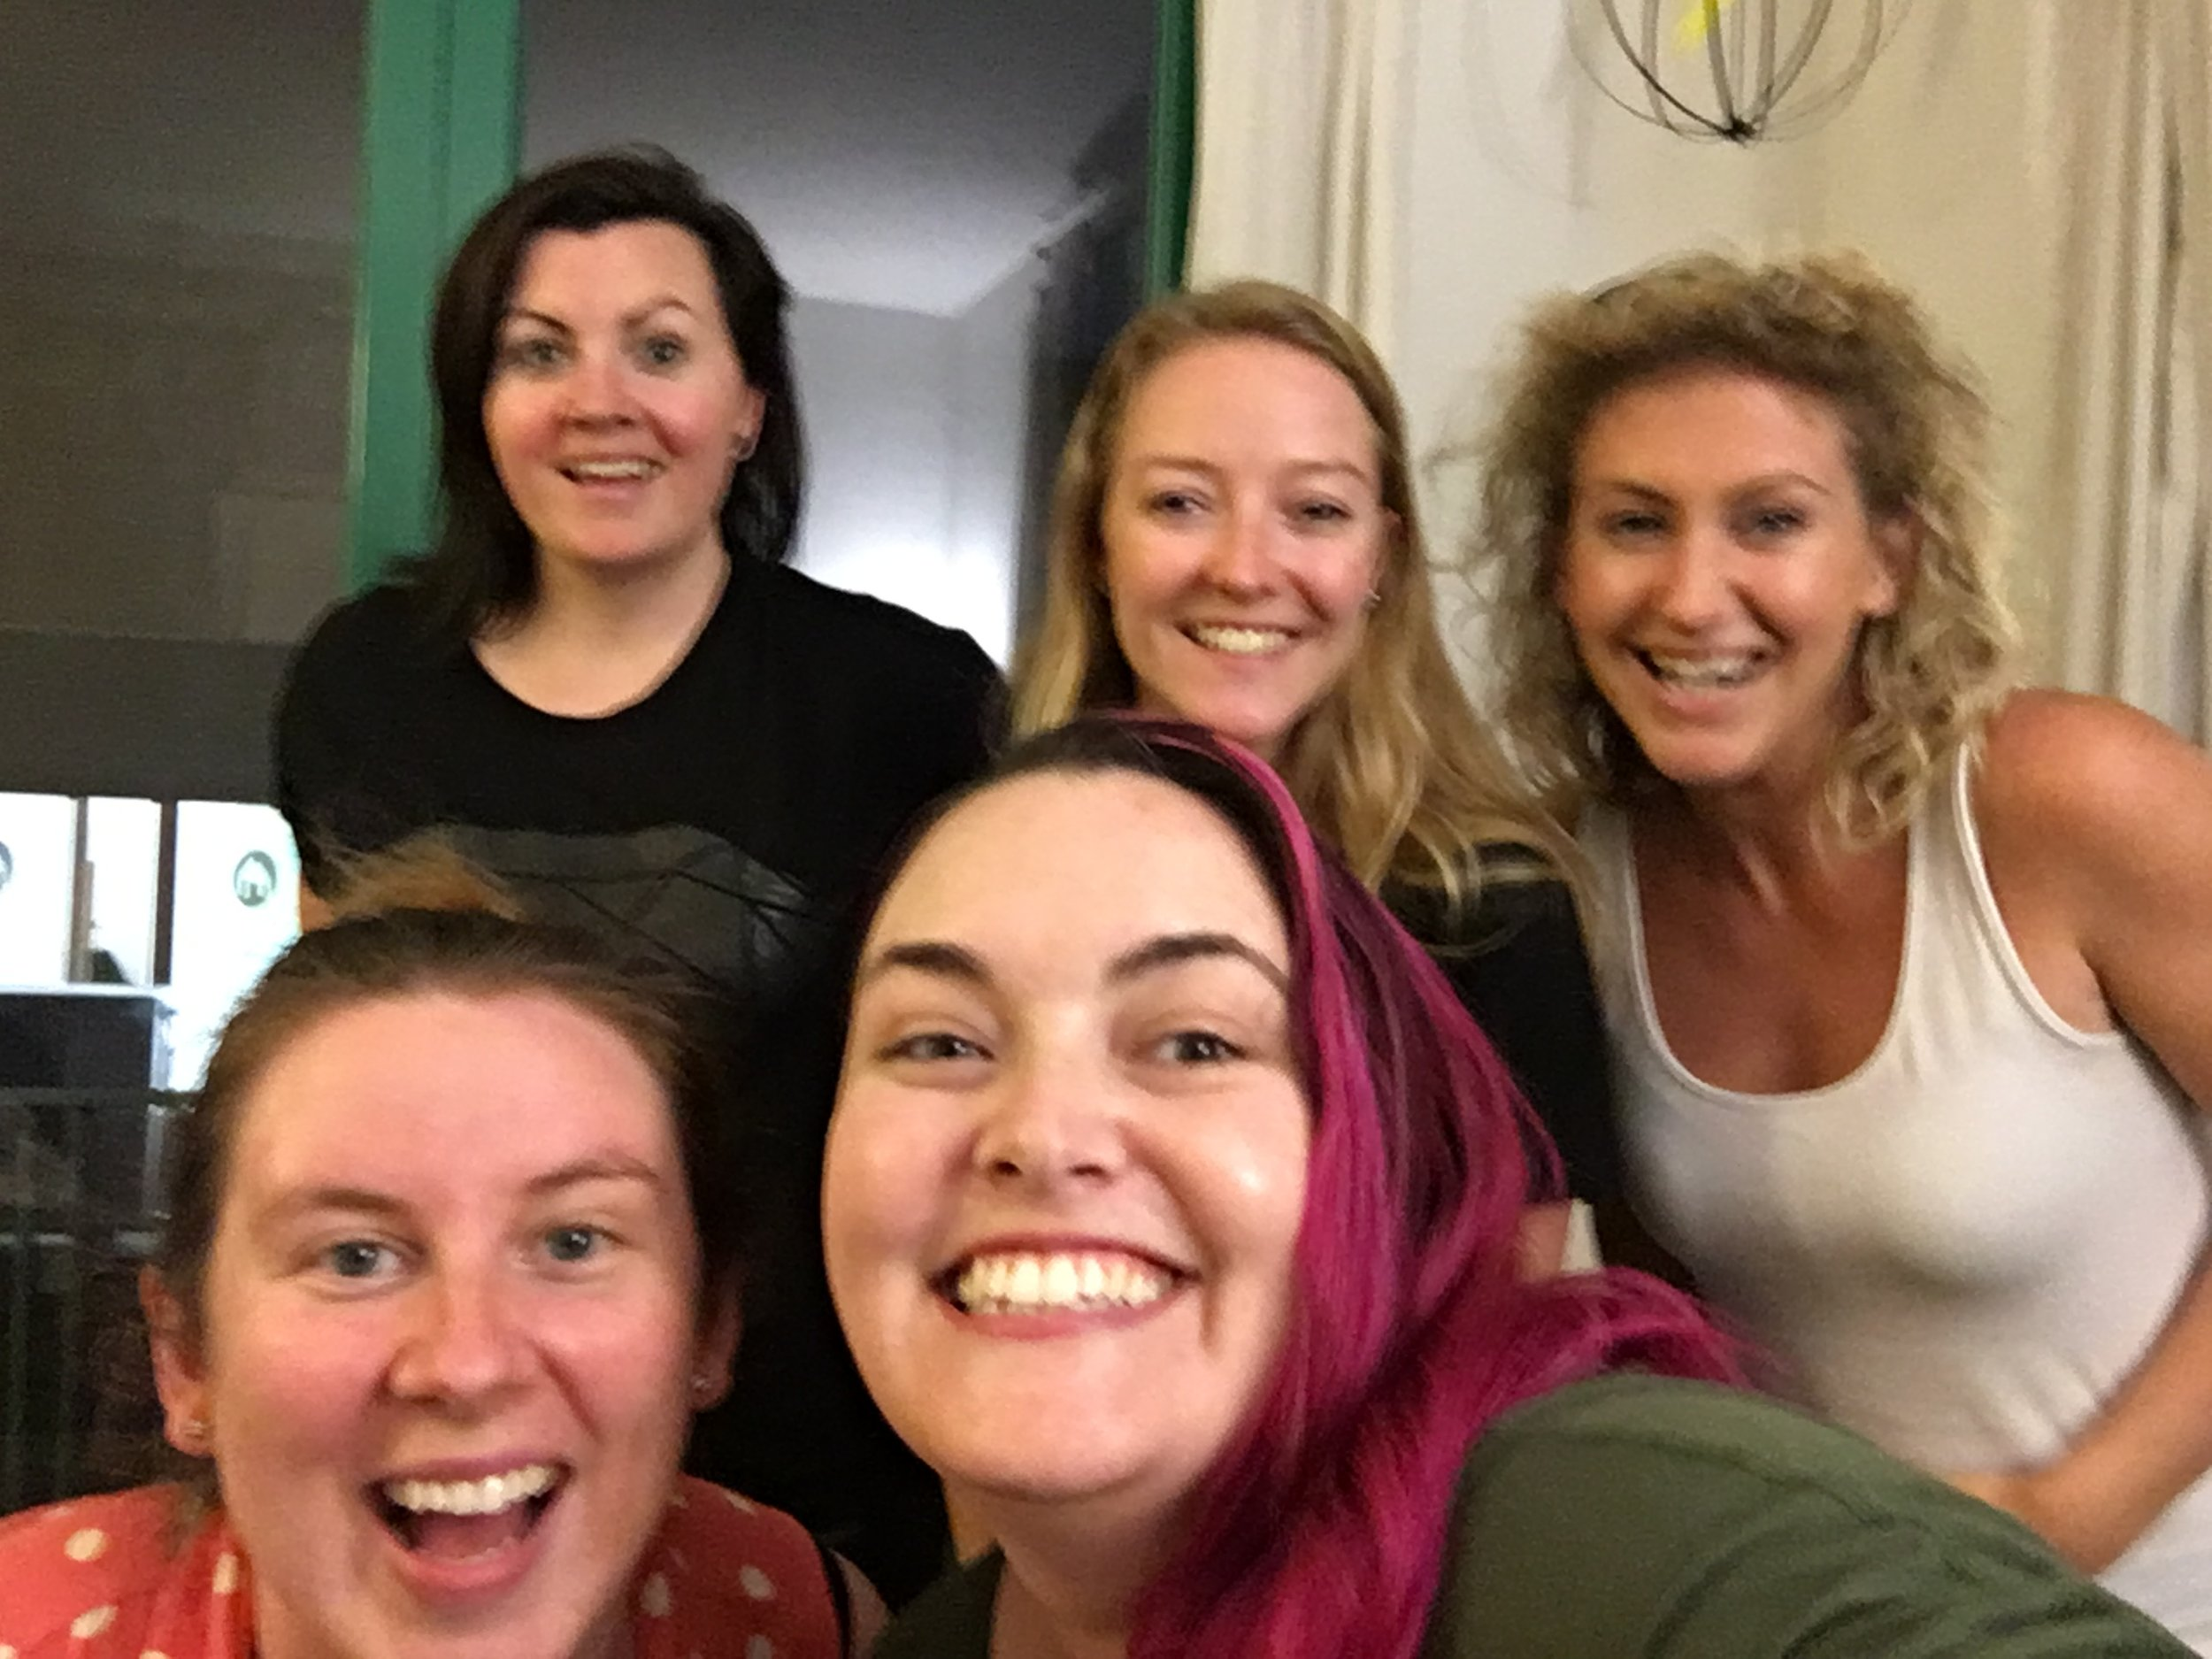 The stunning Beck Power, Jenny Lachs, and Natasha Stanley in a post-interview selfie with Kit + Viv!